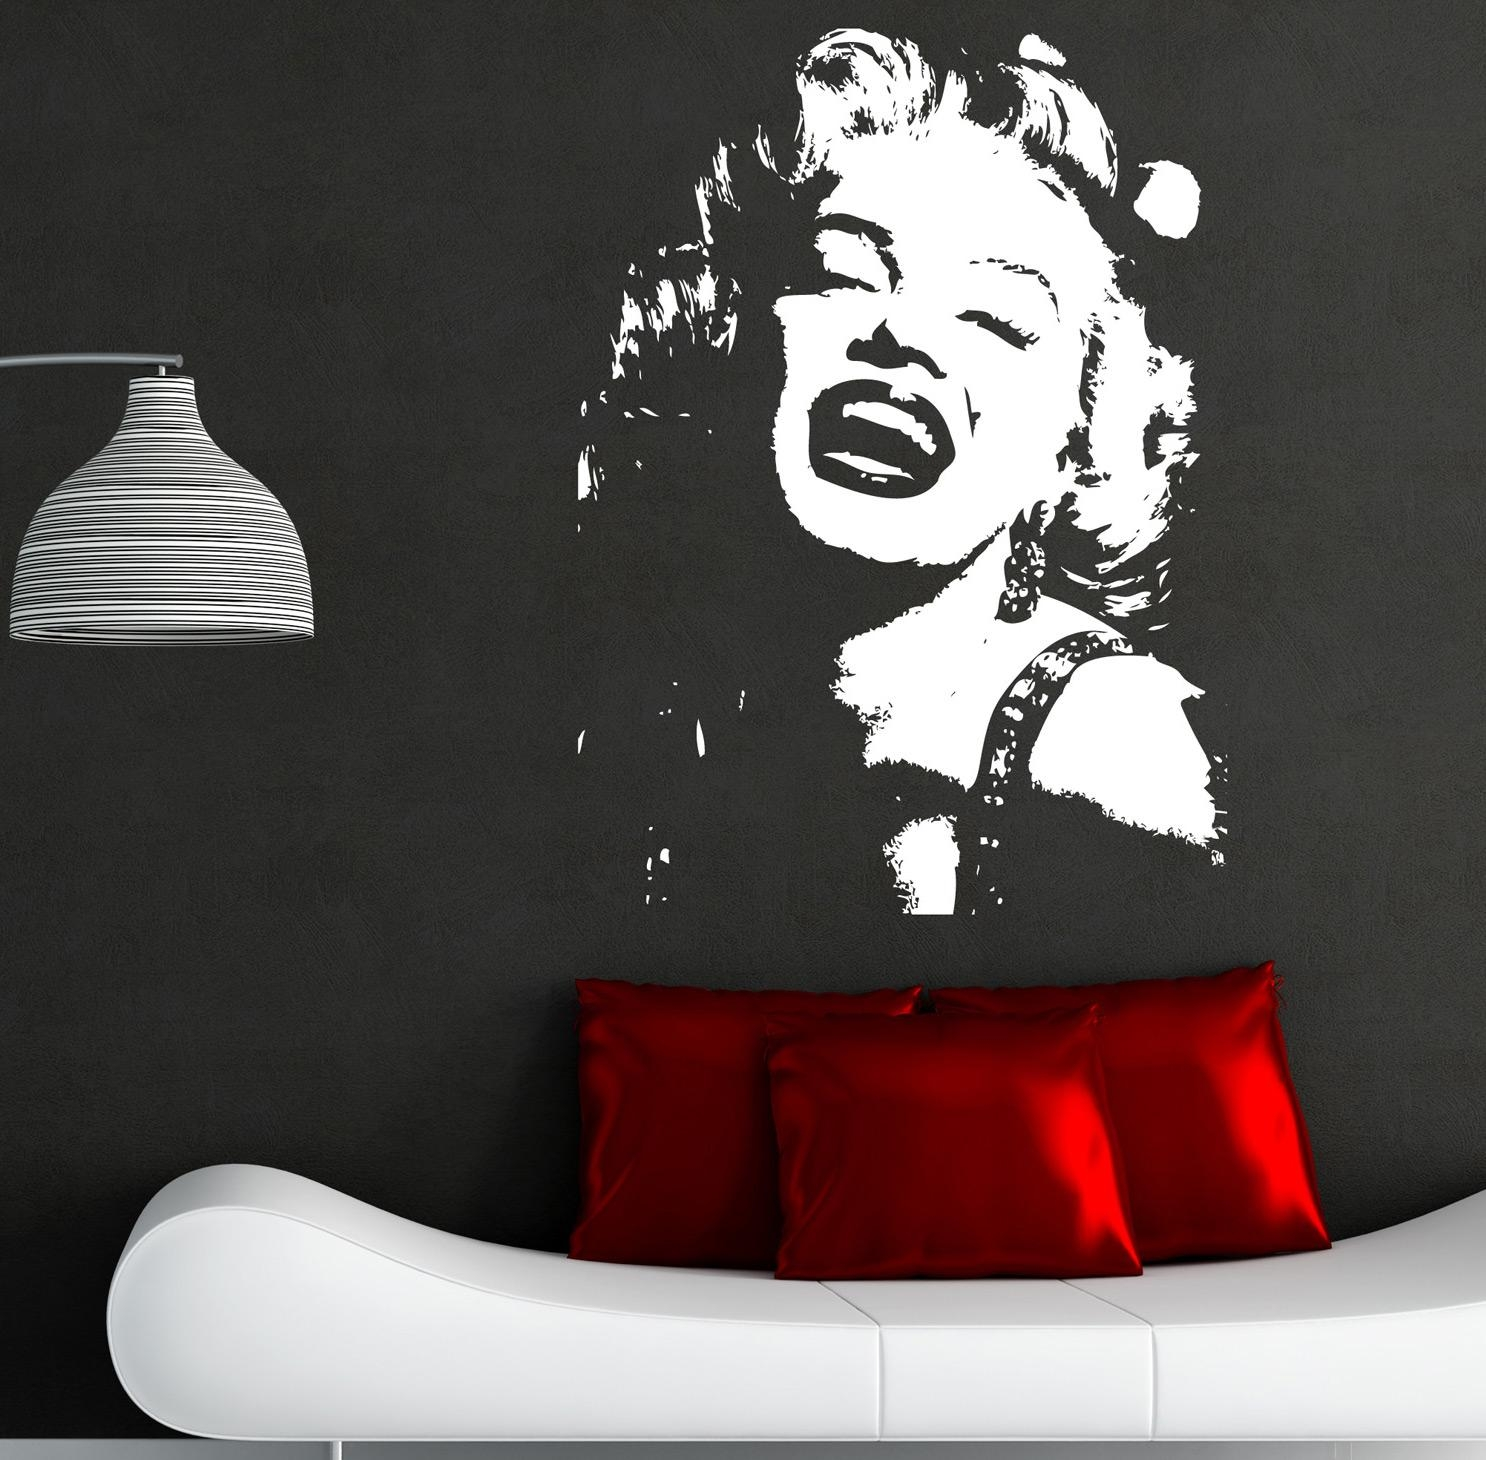 Marilyn Monroe Wall Sticker Art Decals I1 | Ebay Inside Marilyn Monroe Wall Art (View 5 of 20)